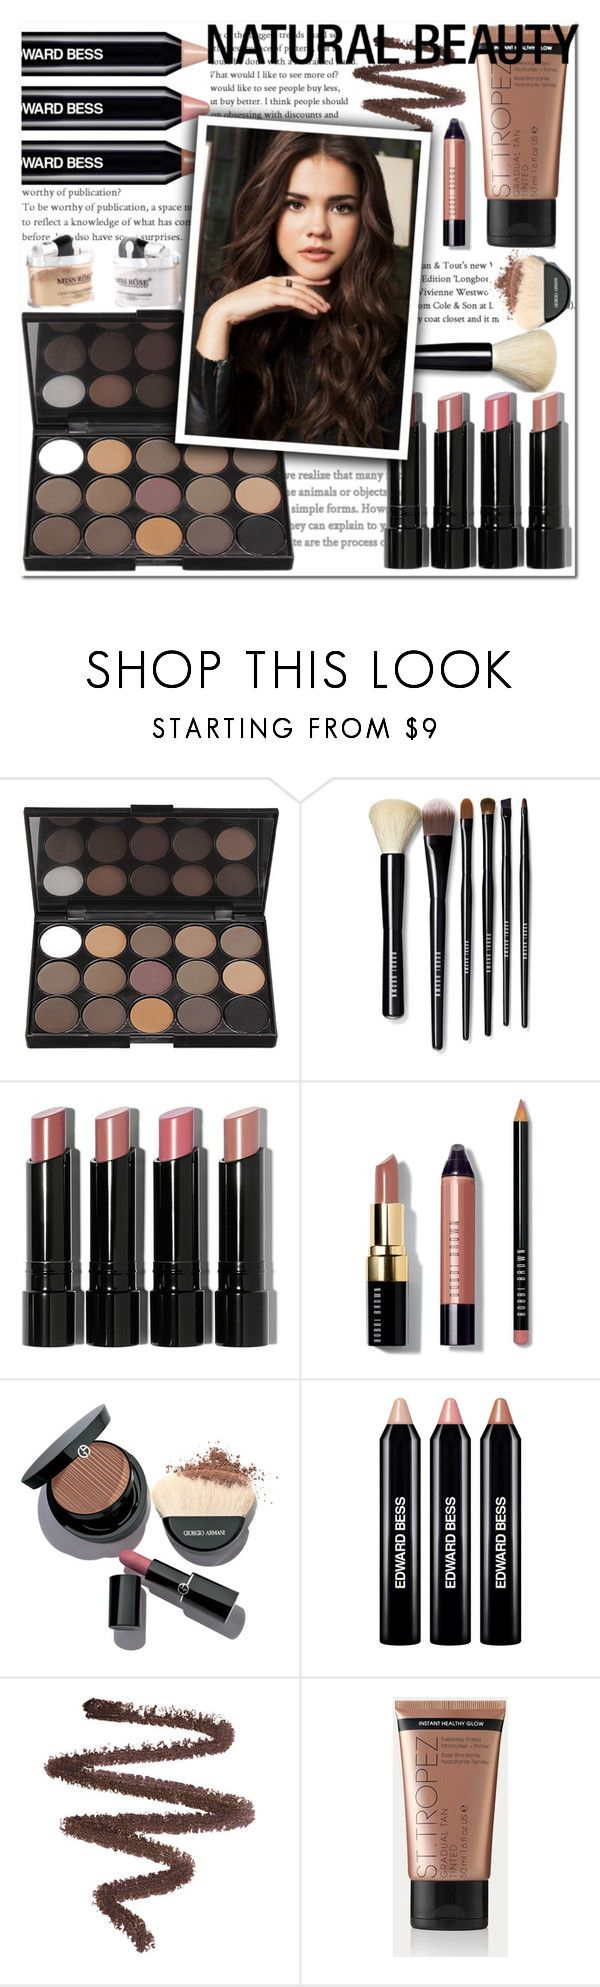 """Get the look"" by sevilalovsadli ❤ liked on Polyvore featuring beauty, Bobbi Brown Cosmetics, Giorgio Armani, Edward Bess and BARBARELLA"